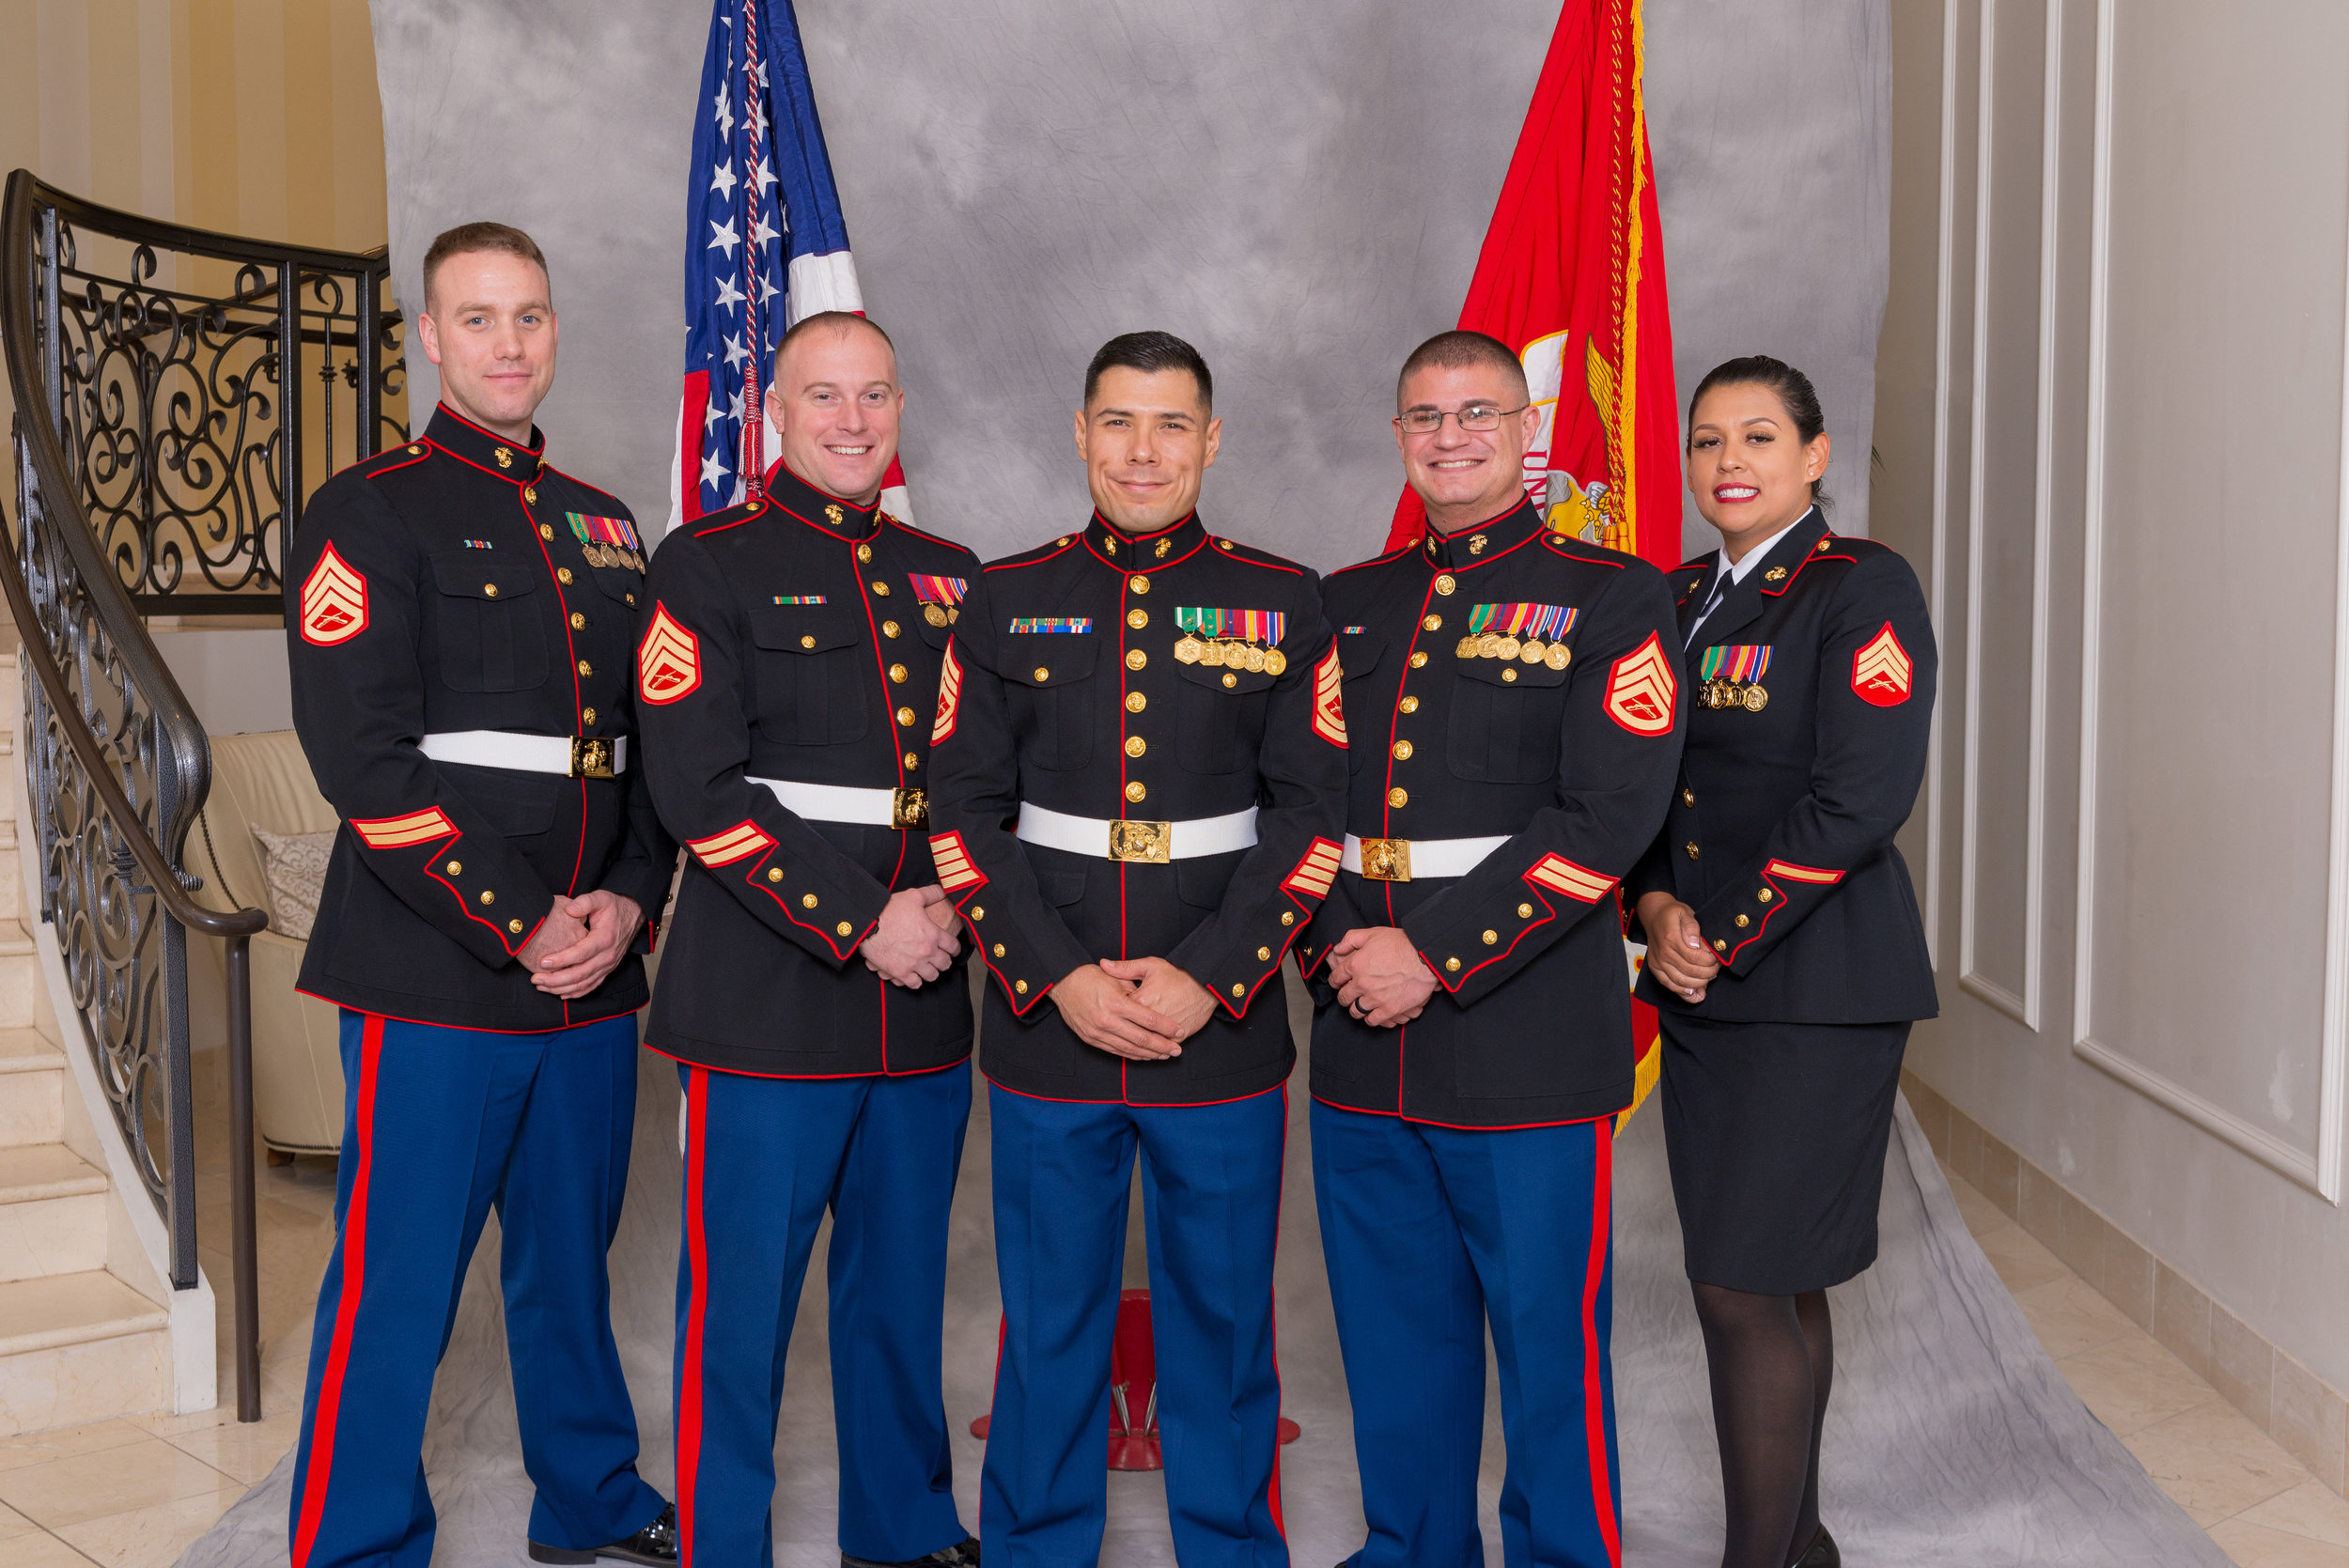 Marine Corp Birthday Ball 2018